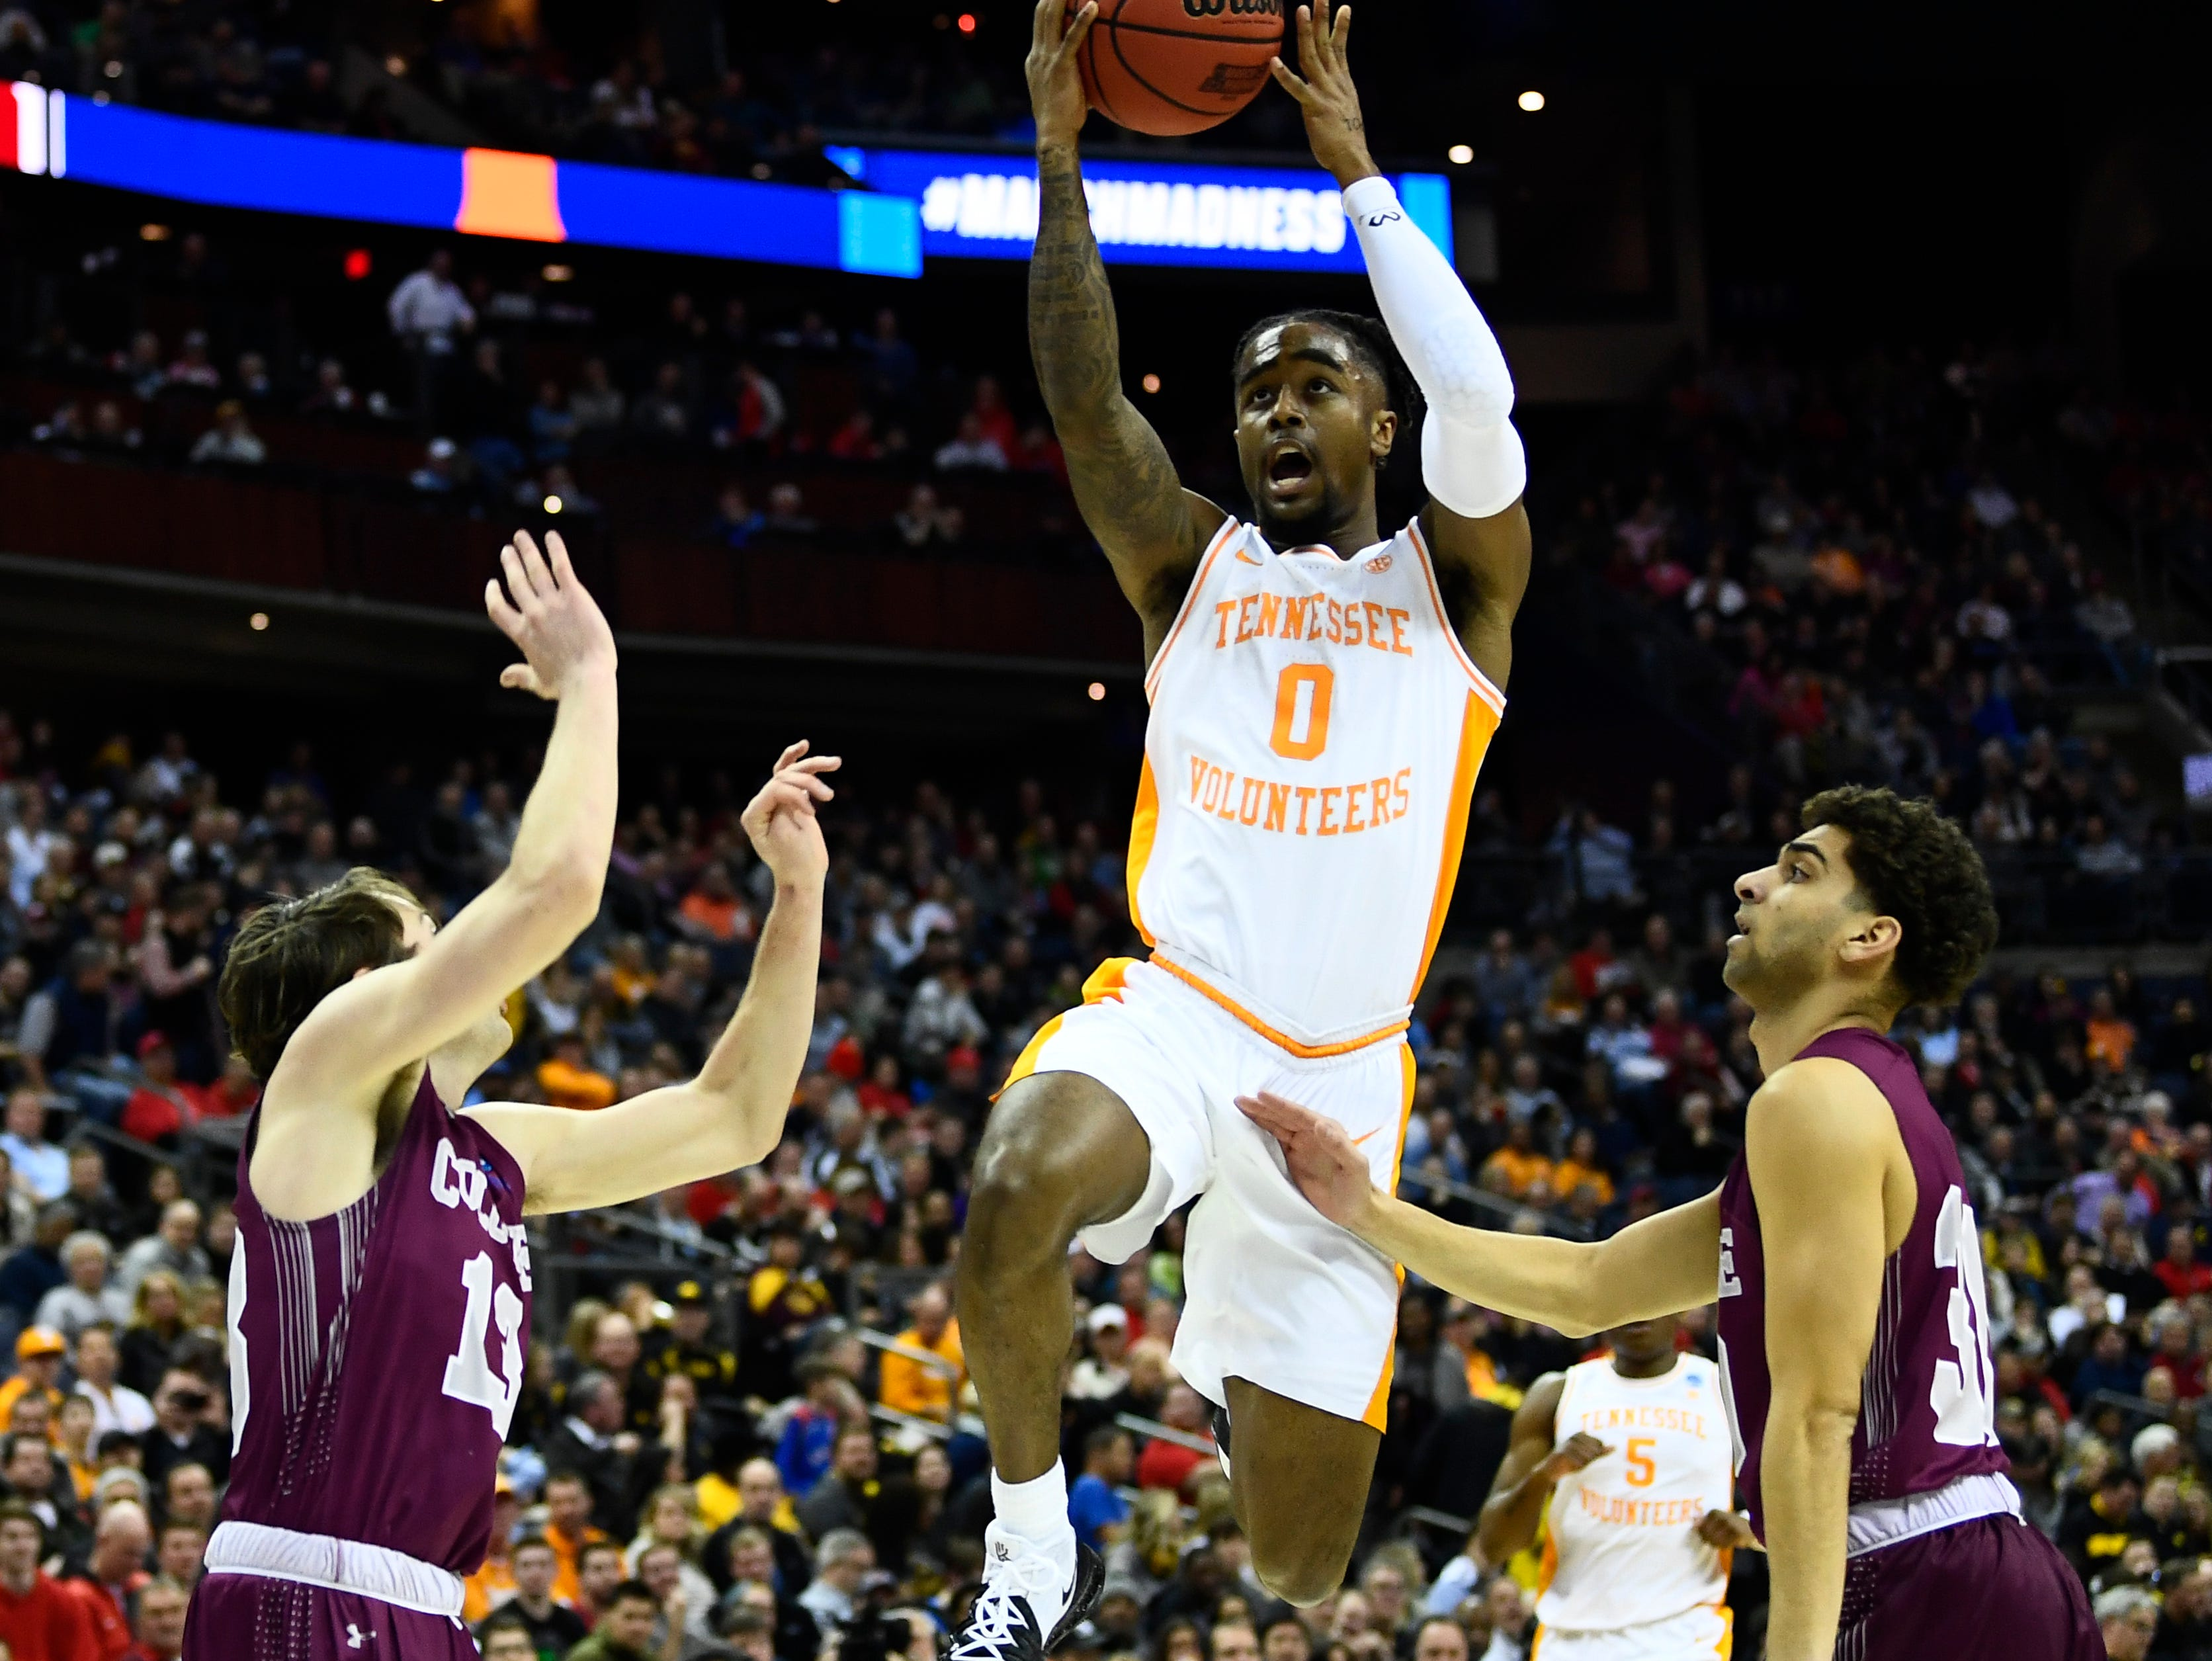 Tennessee guard Jordan Bone (0) shoots over Colgate guard Jack Ferguson (13) and Colgate guard Francisco Amiel (30) during the first round game of the NCAA Tournament at Nationwide Arena in Columbus, Ohio, on Friday, March 22, 2019.